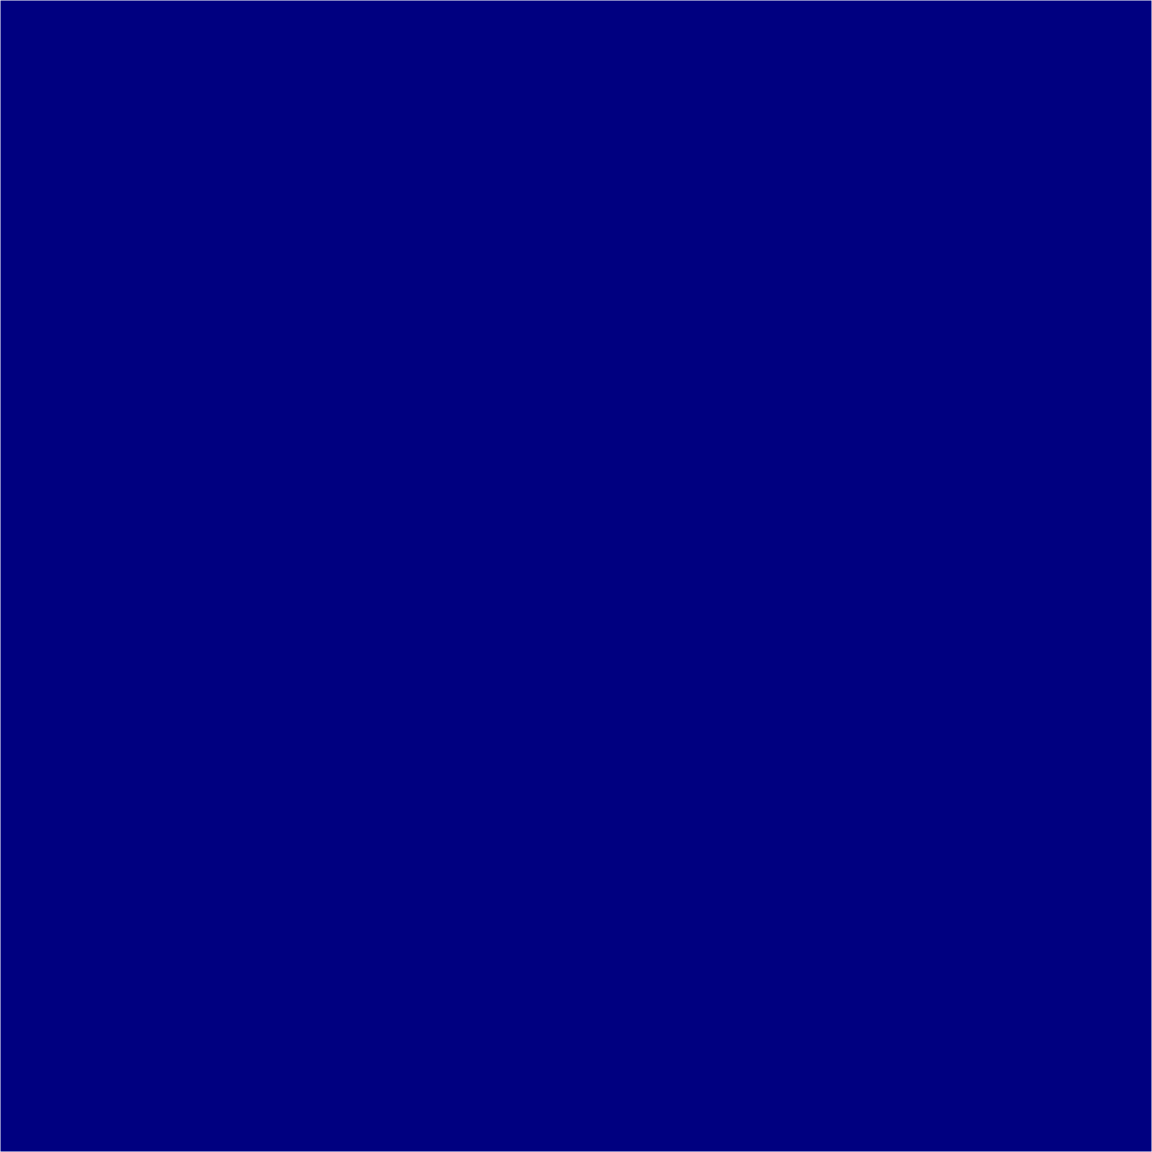 Navy Blue Wallpaper - WallpaperSafari